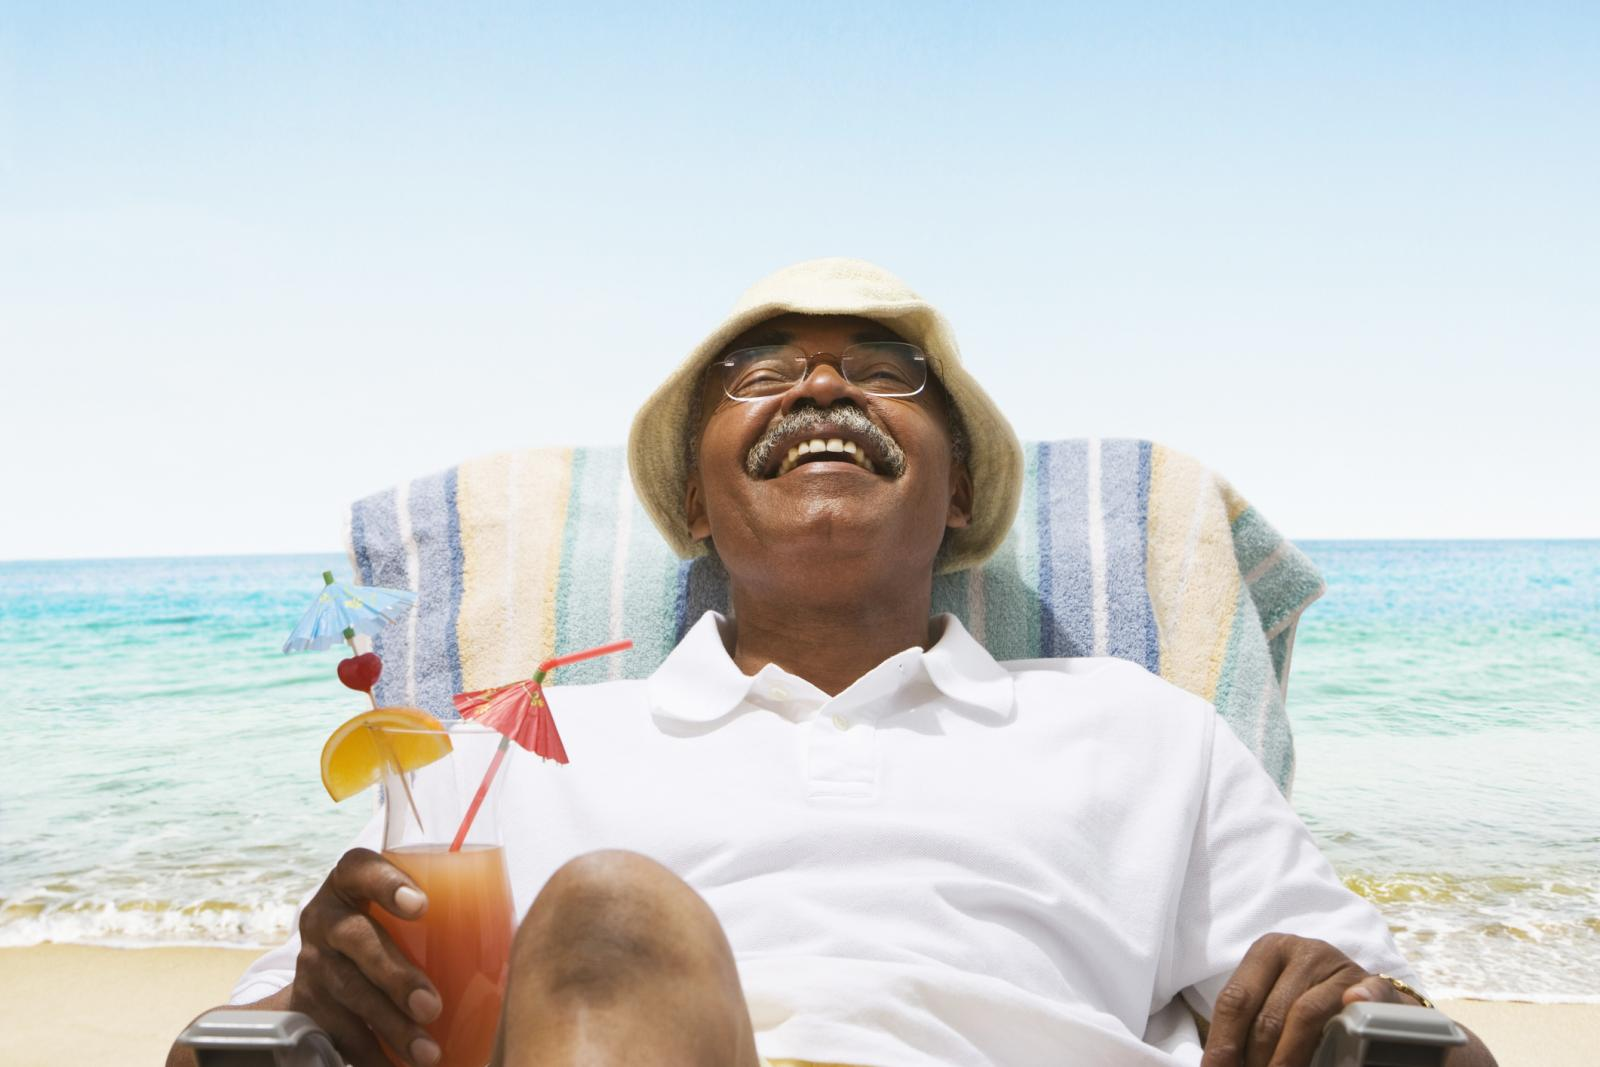 African American senior man relaxing at the beach